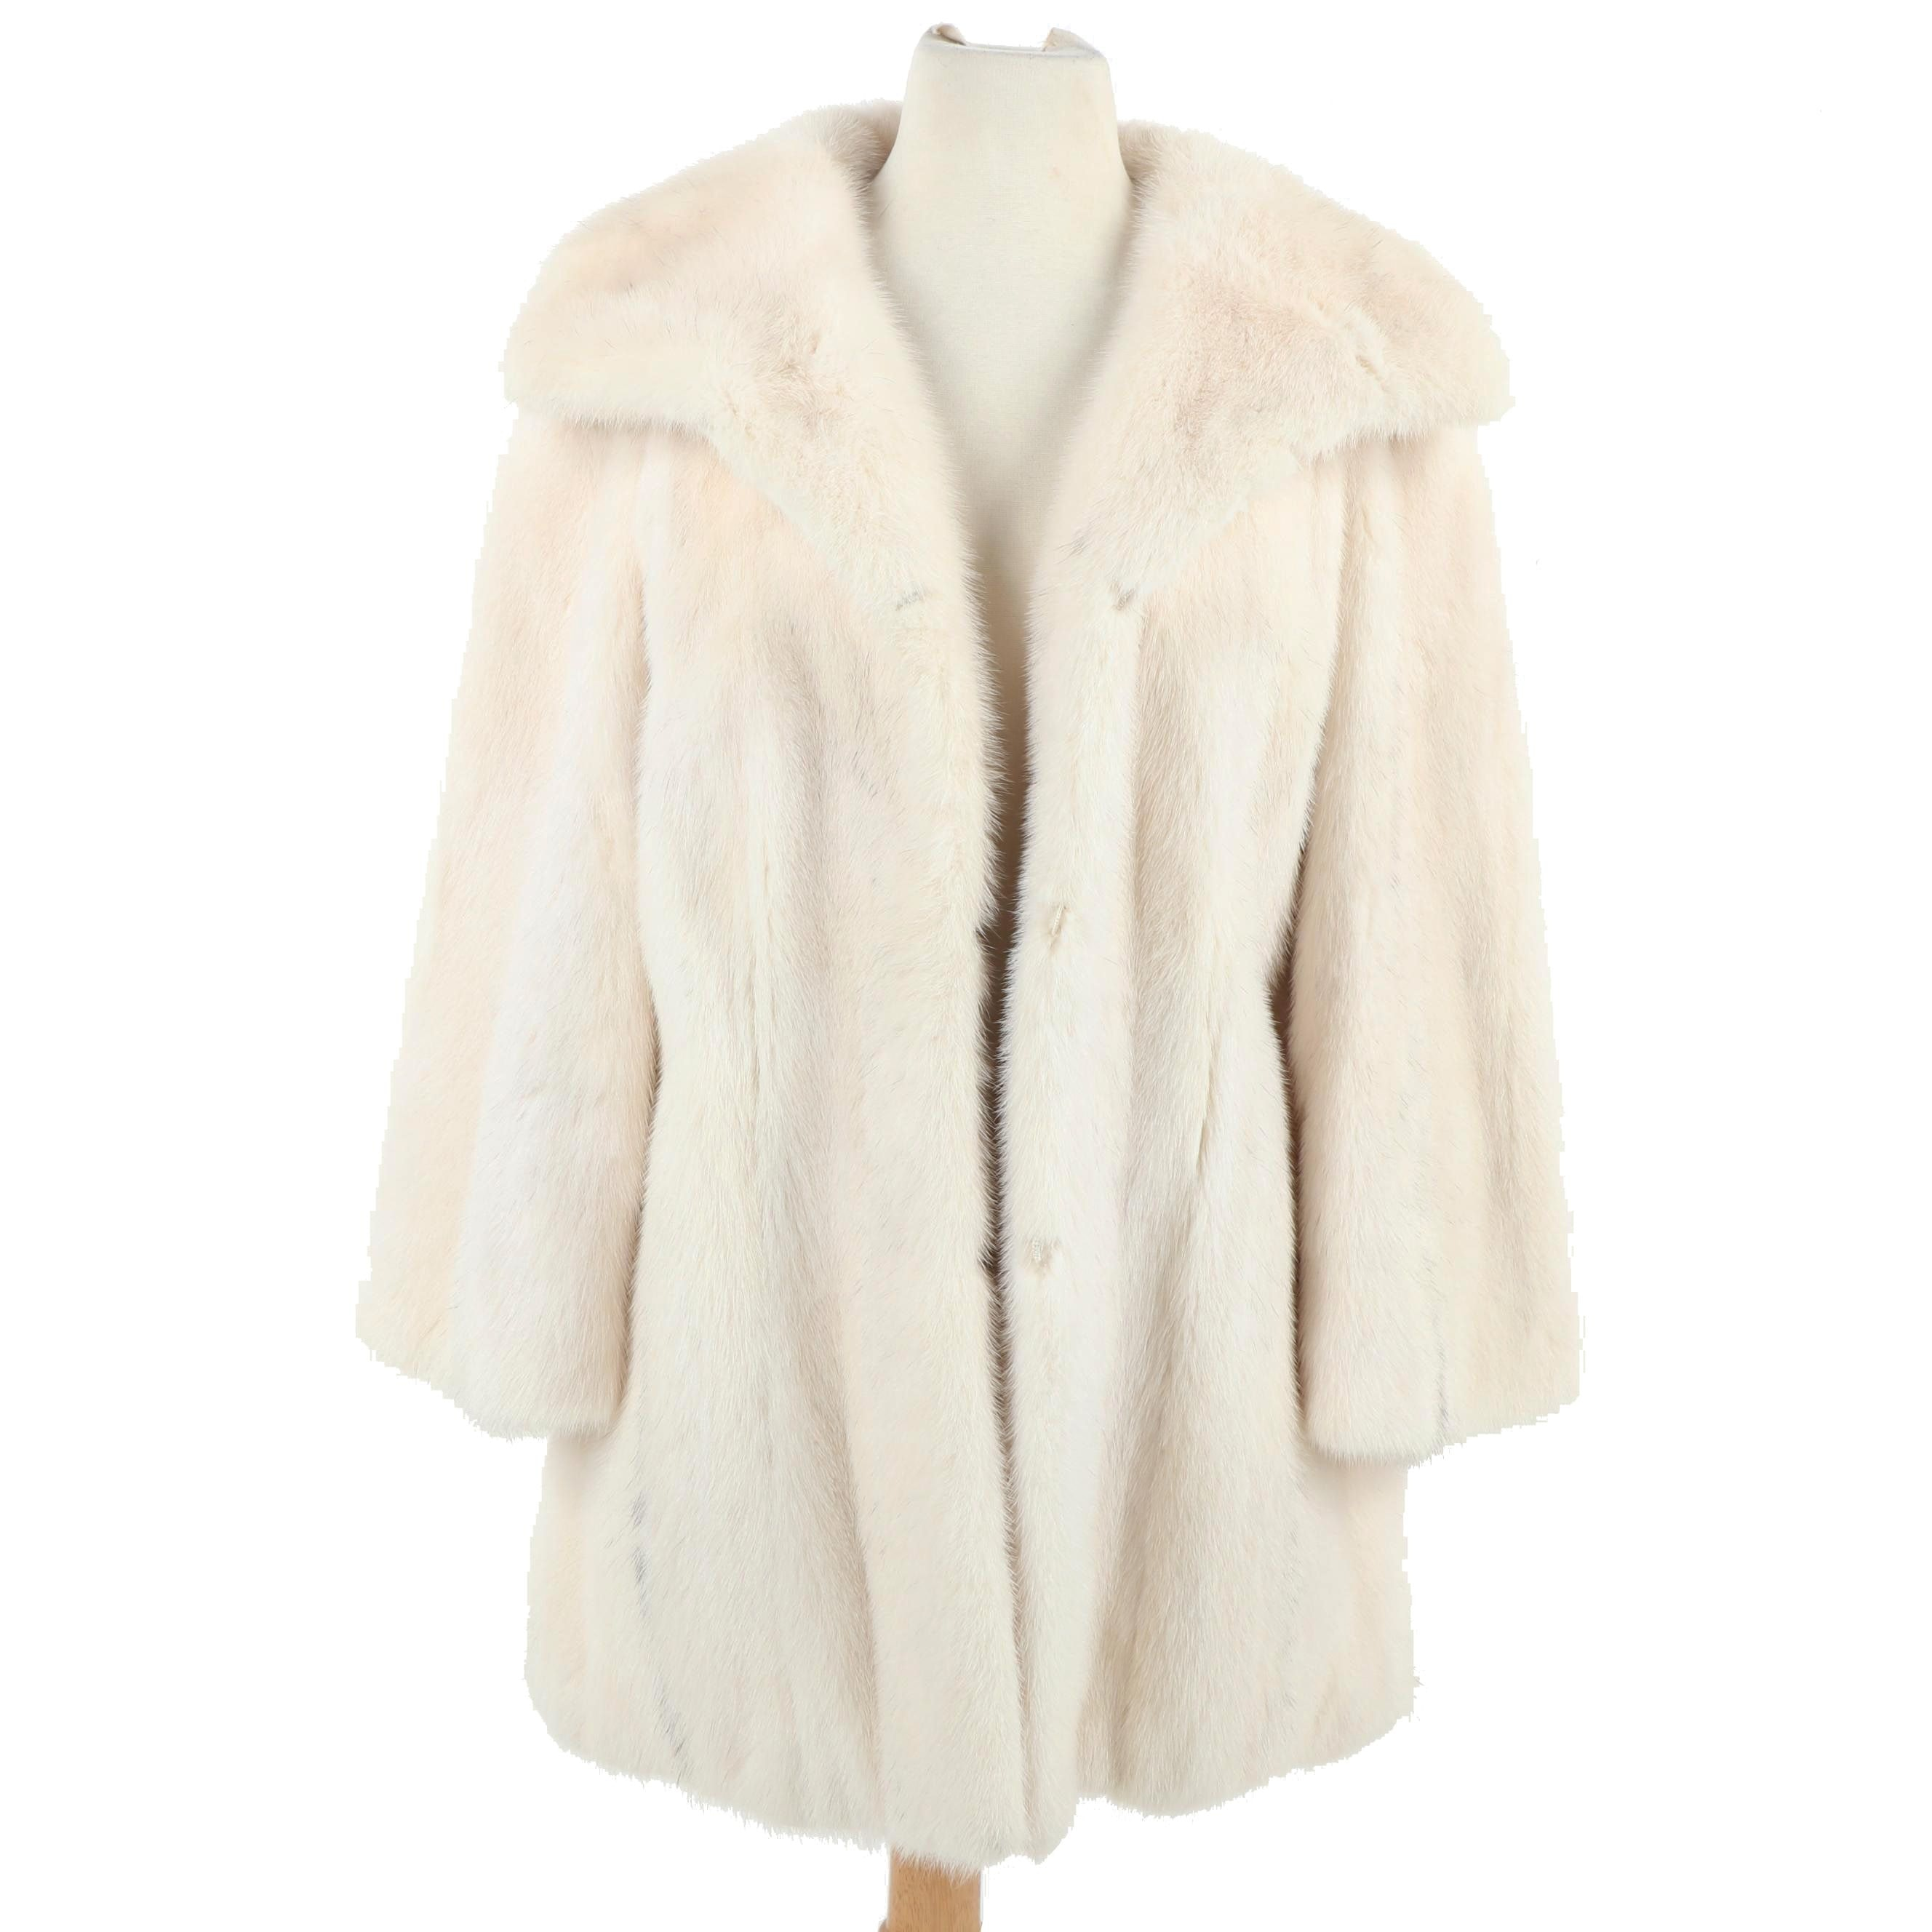 Women's White Mink Fur Coat